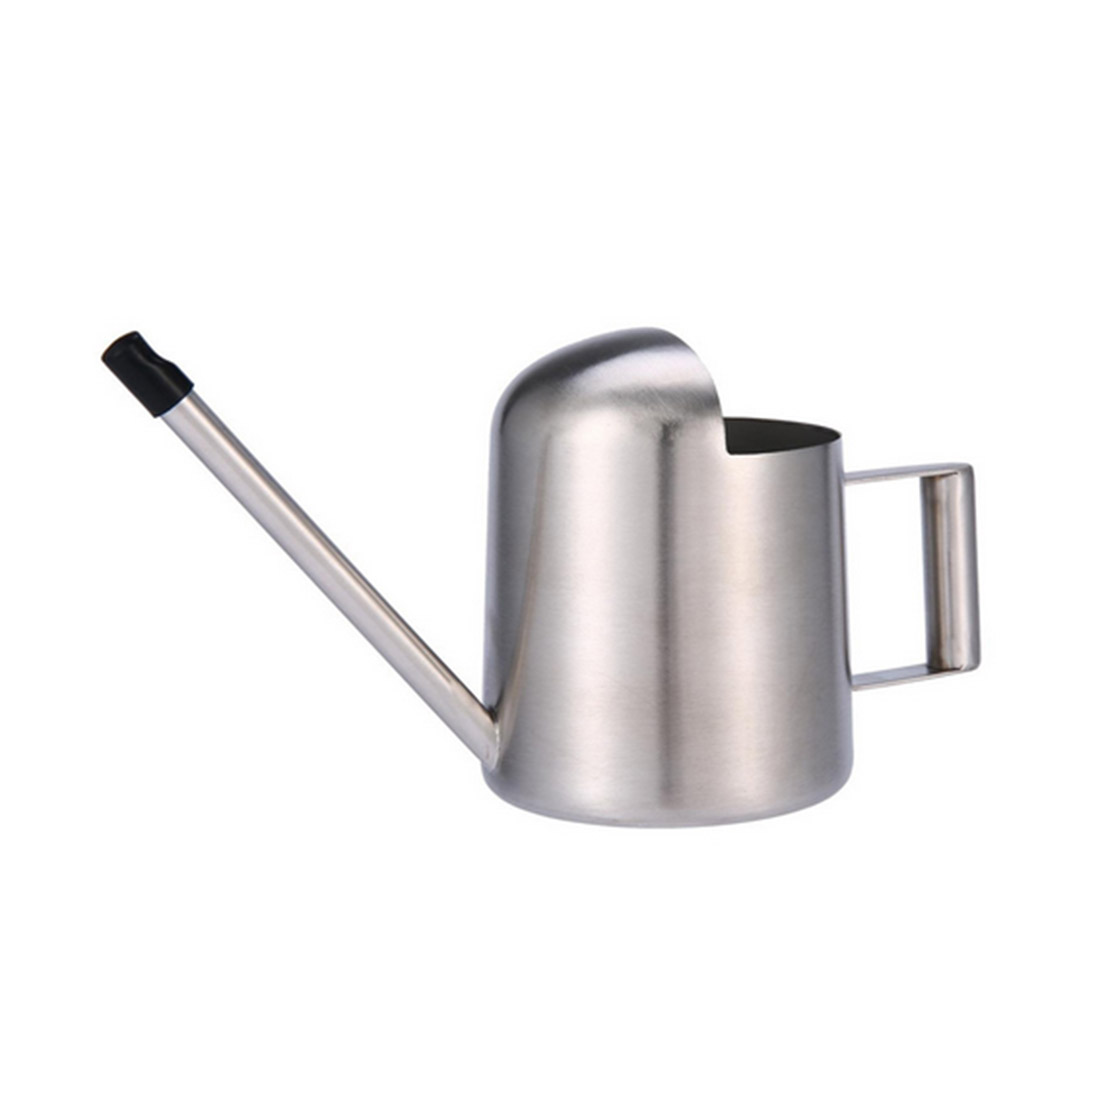 VICTMAX 1 Pcs 300ML Stainless Steel Water Cans Mini Flower Spraying Watering Spray Bottle With Long Mouth Watering Kettle Silver